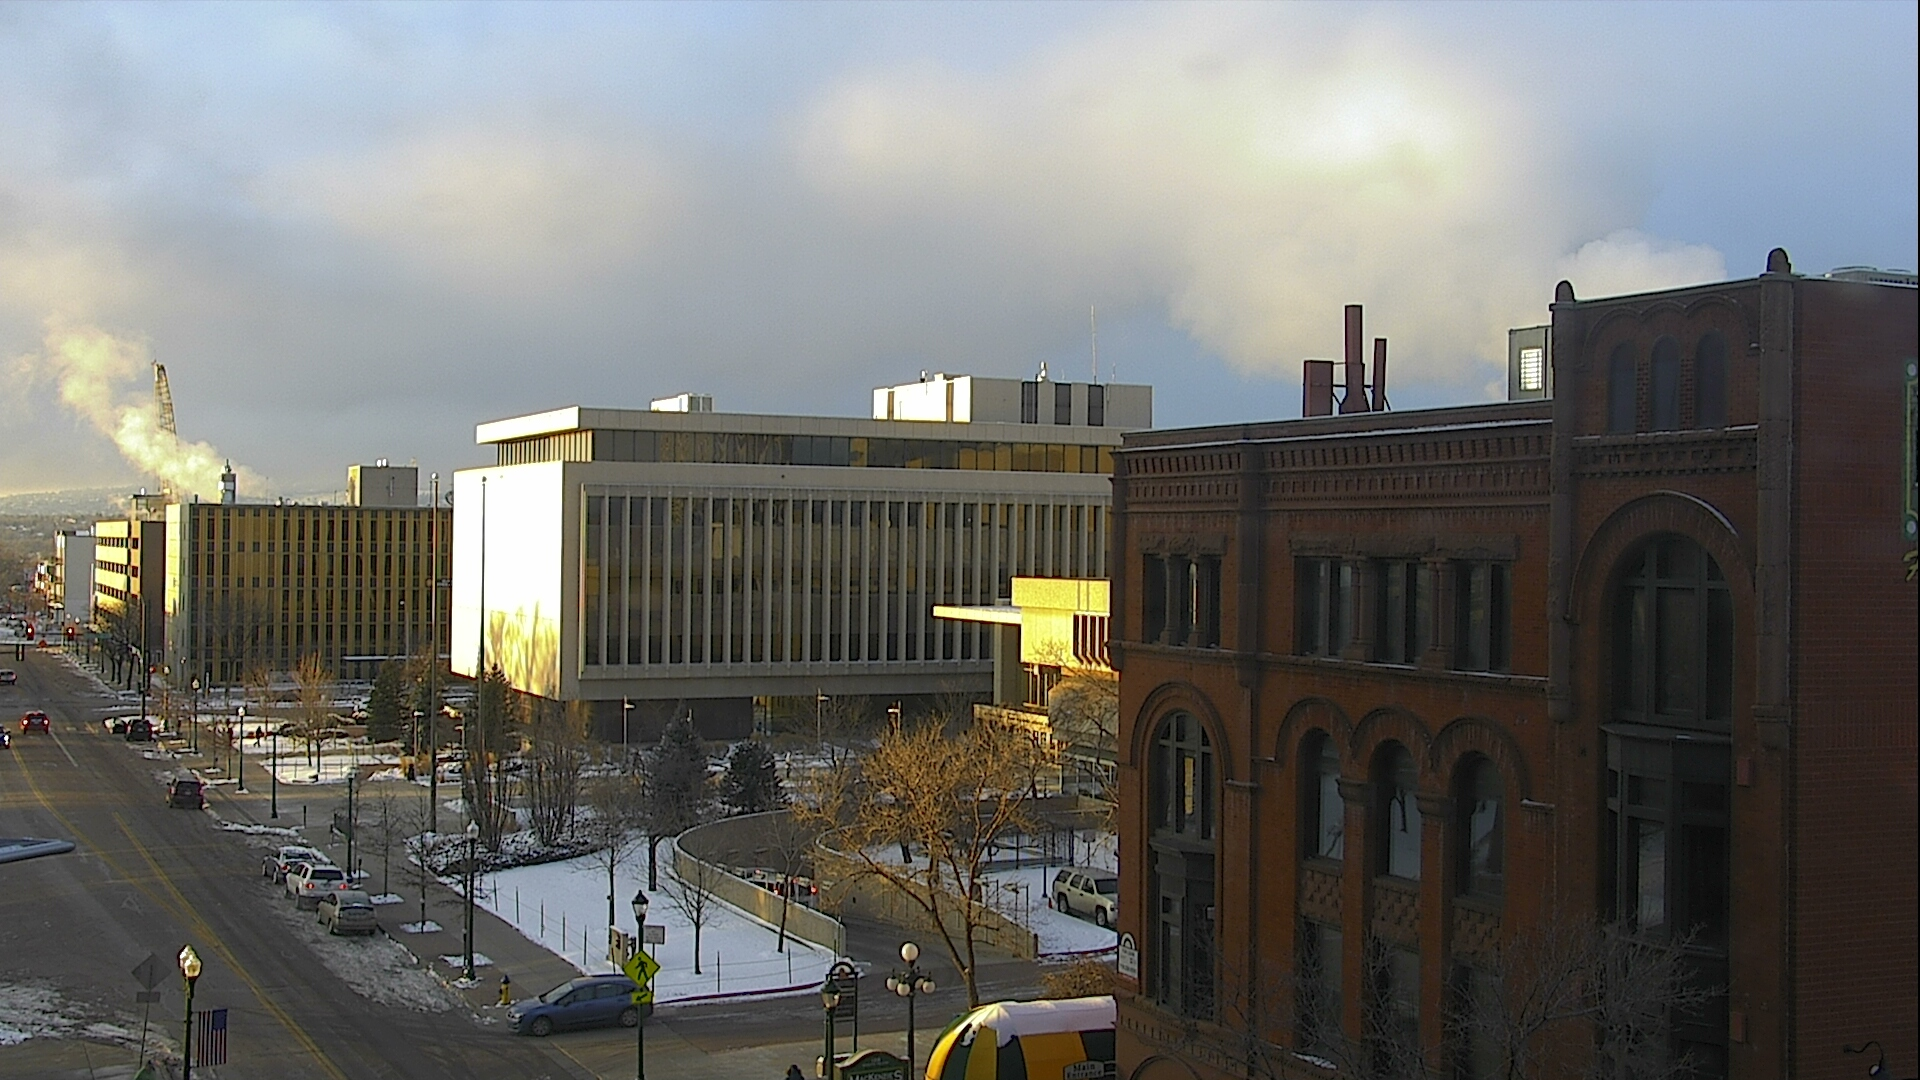 Fog clears out over Tejon Street in downtown Colorado Springs around 7:30 a.m. Wednesday.